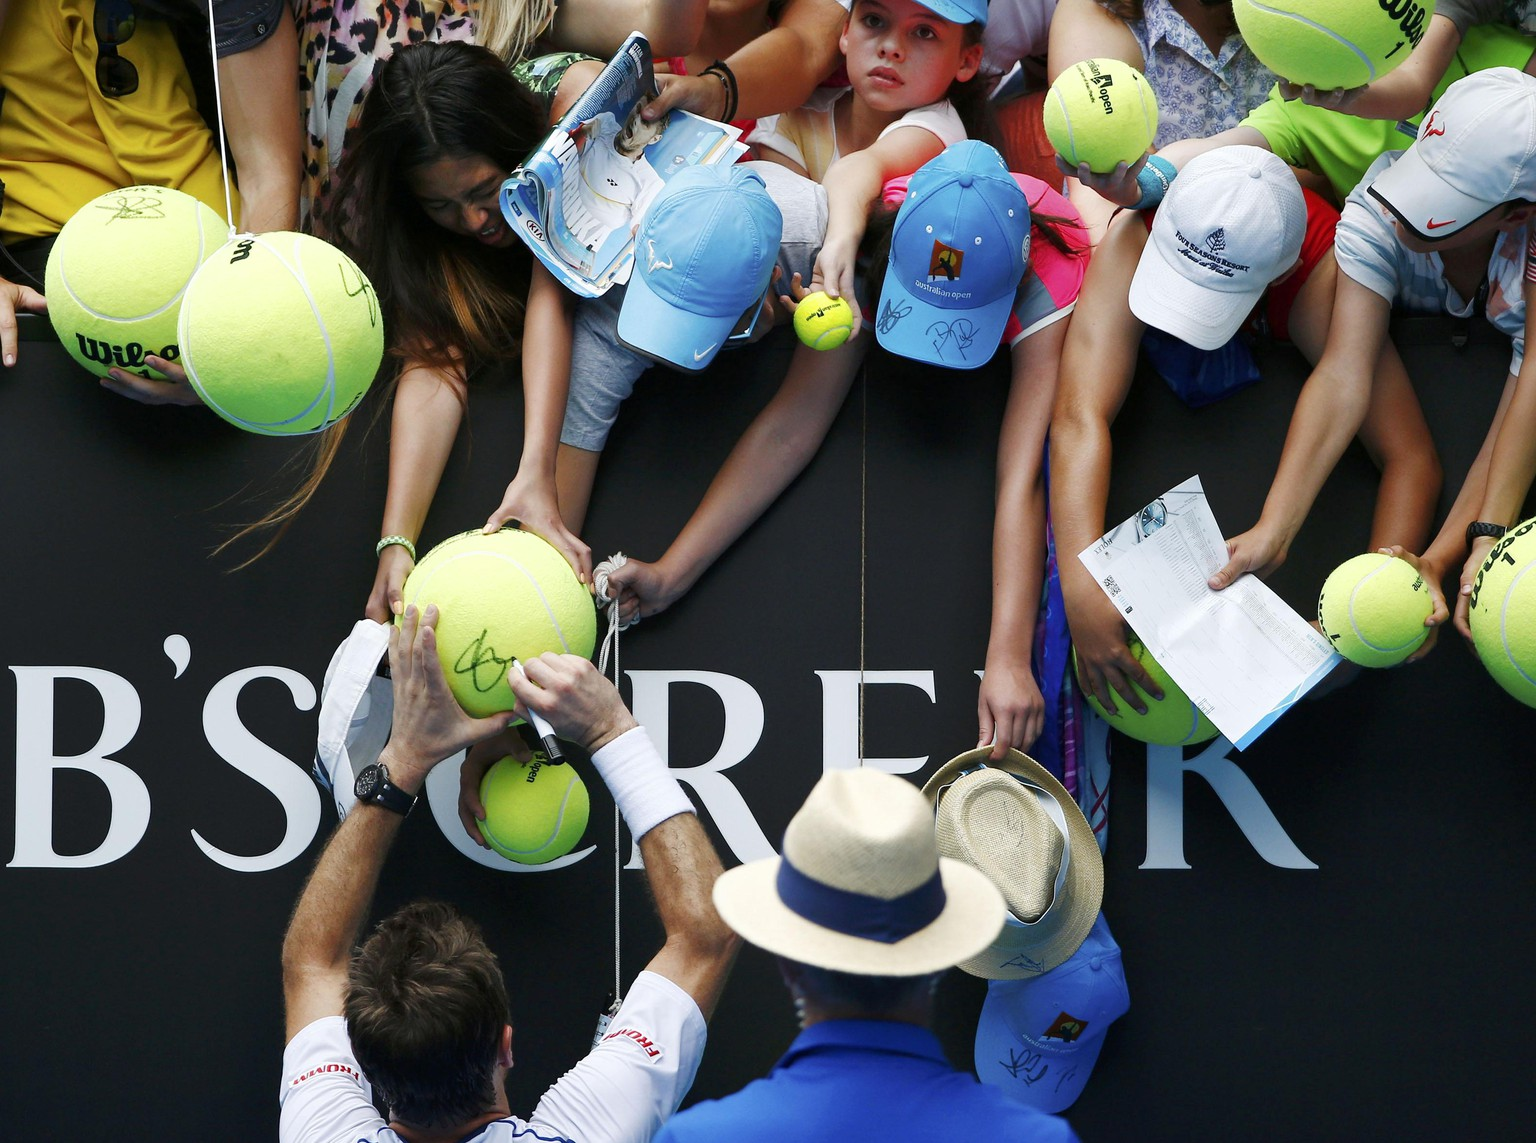 Stan Wawrinka (bottom L) of Switzerland signs autographs after defeating Marsel Ilhan of Turkey to win their men's singles first round match at the Australian Open 2015 tennis tournament in Melbourne January 20, 2015. REUTERS/Athit Perawongmetha (AUSTRALIA  - Tags: SPORT TENNIS)